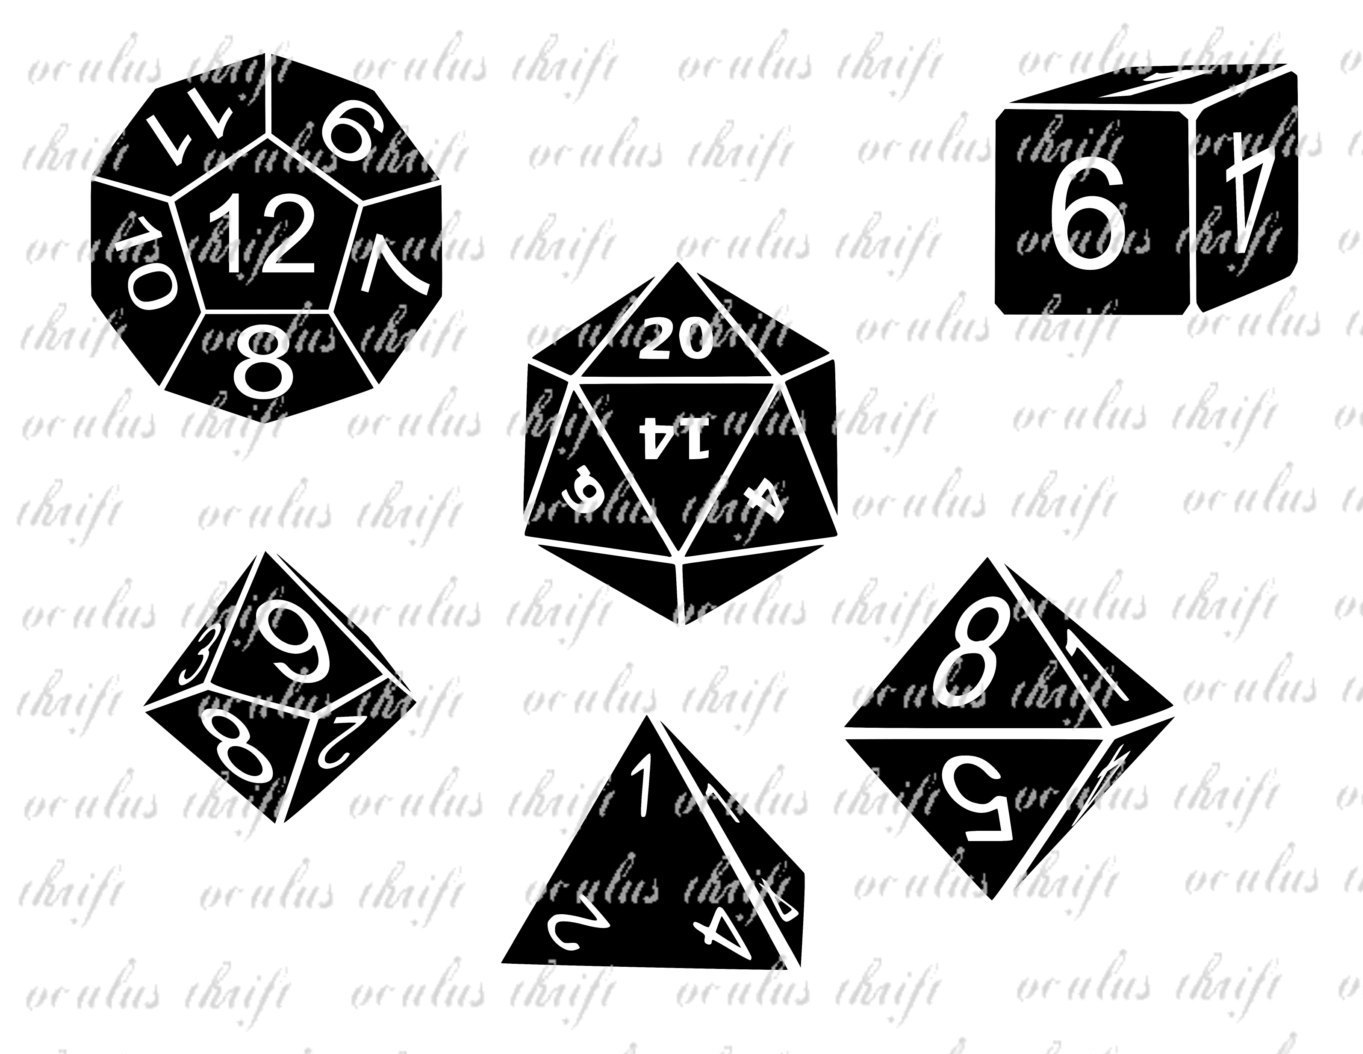 picture royalty free D20 clipart rpg dice. Camera flash graphics illustrations